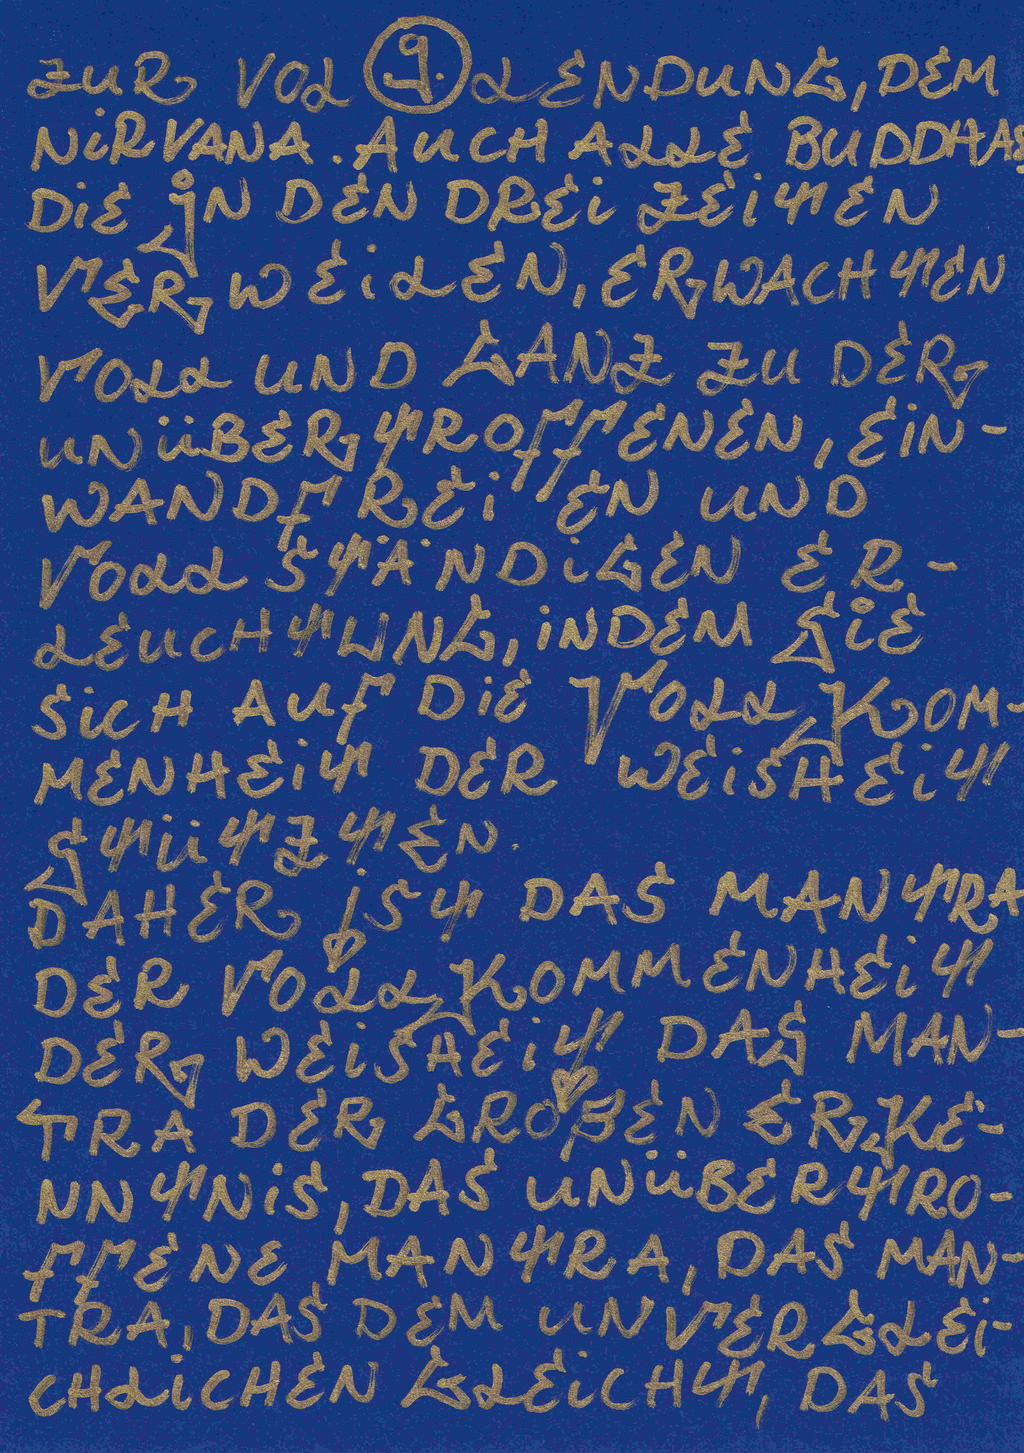 Graffiti Edition of the Heart Sutra page 9